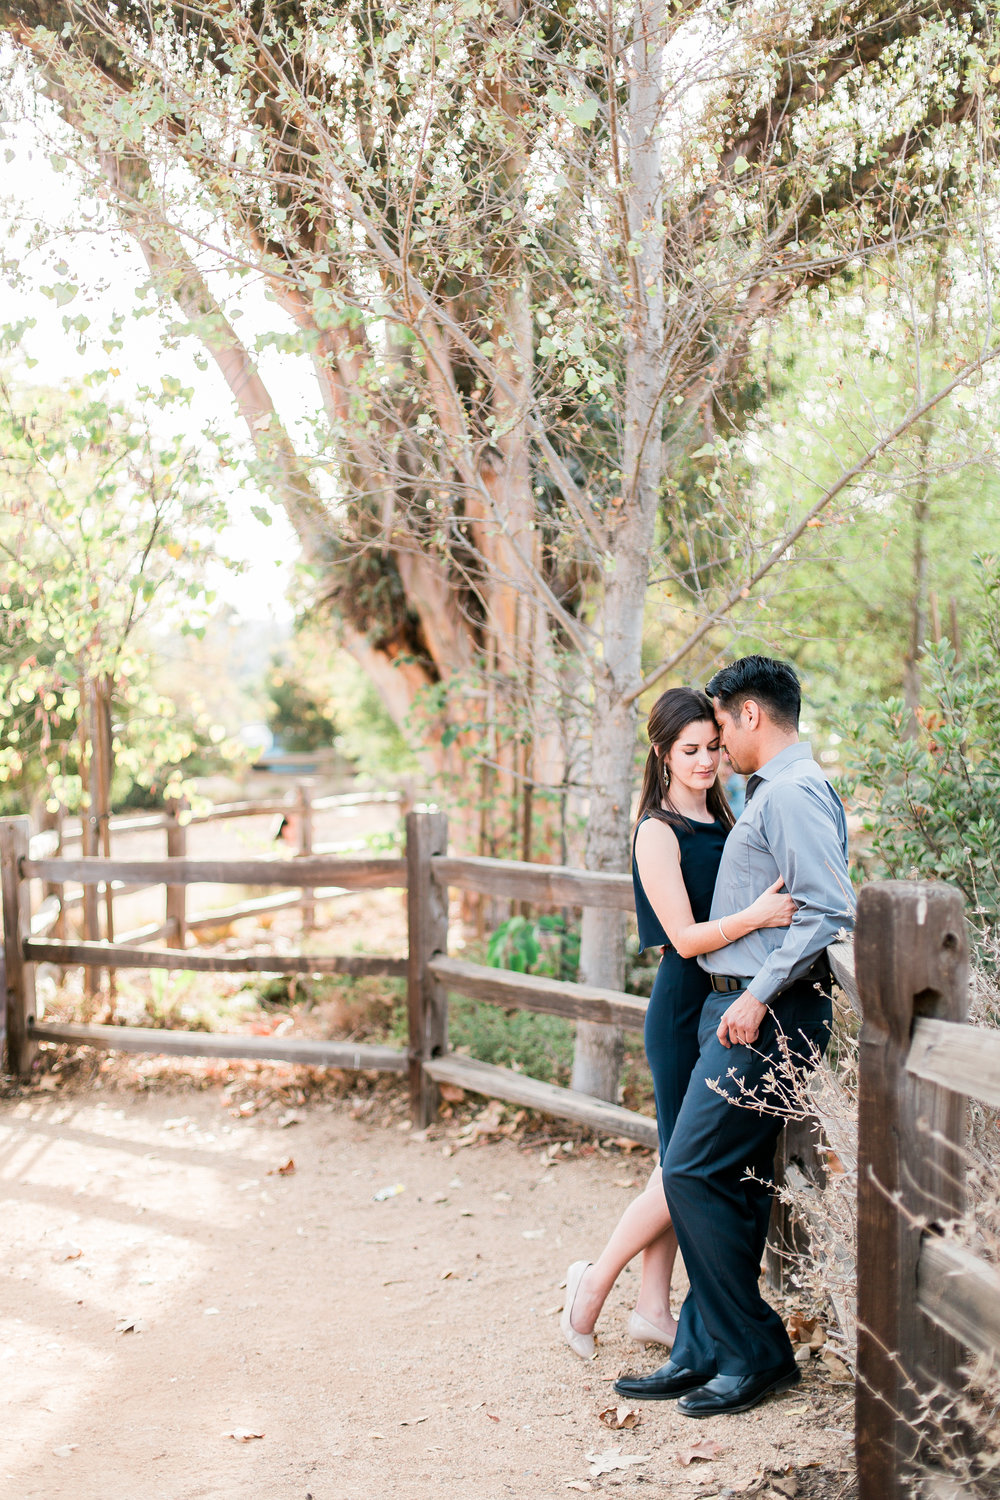 CHRISTINA+ALEX-ENGAGEMENT-100.jpg